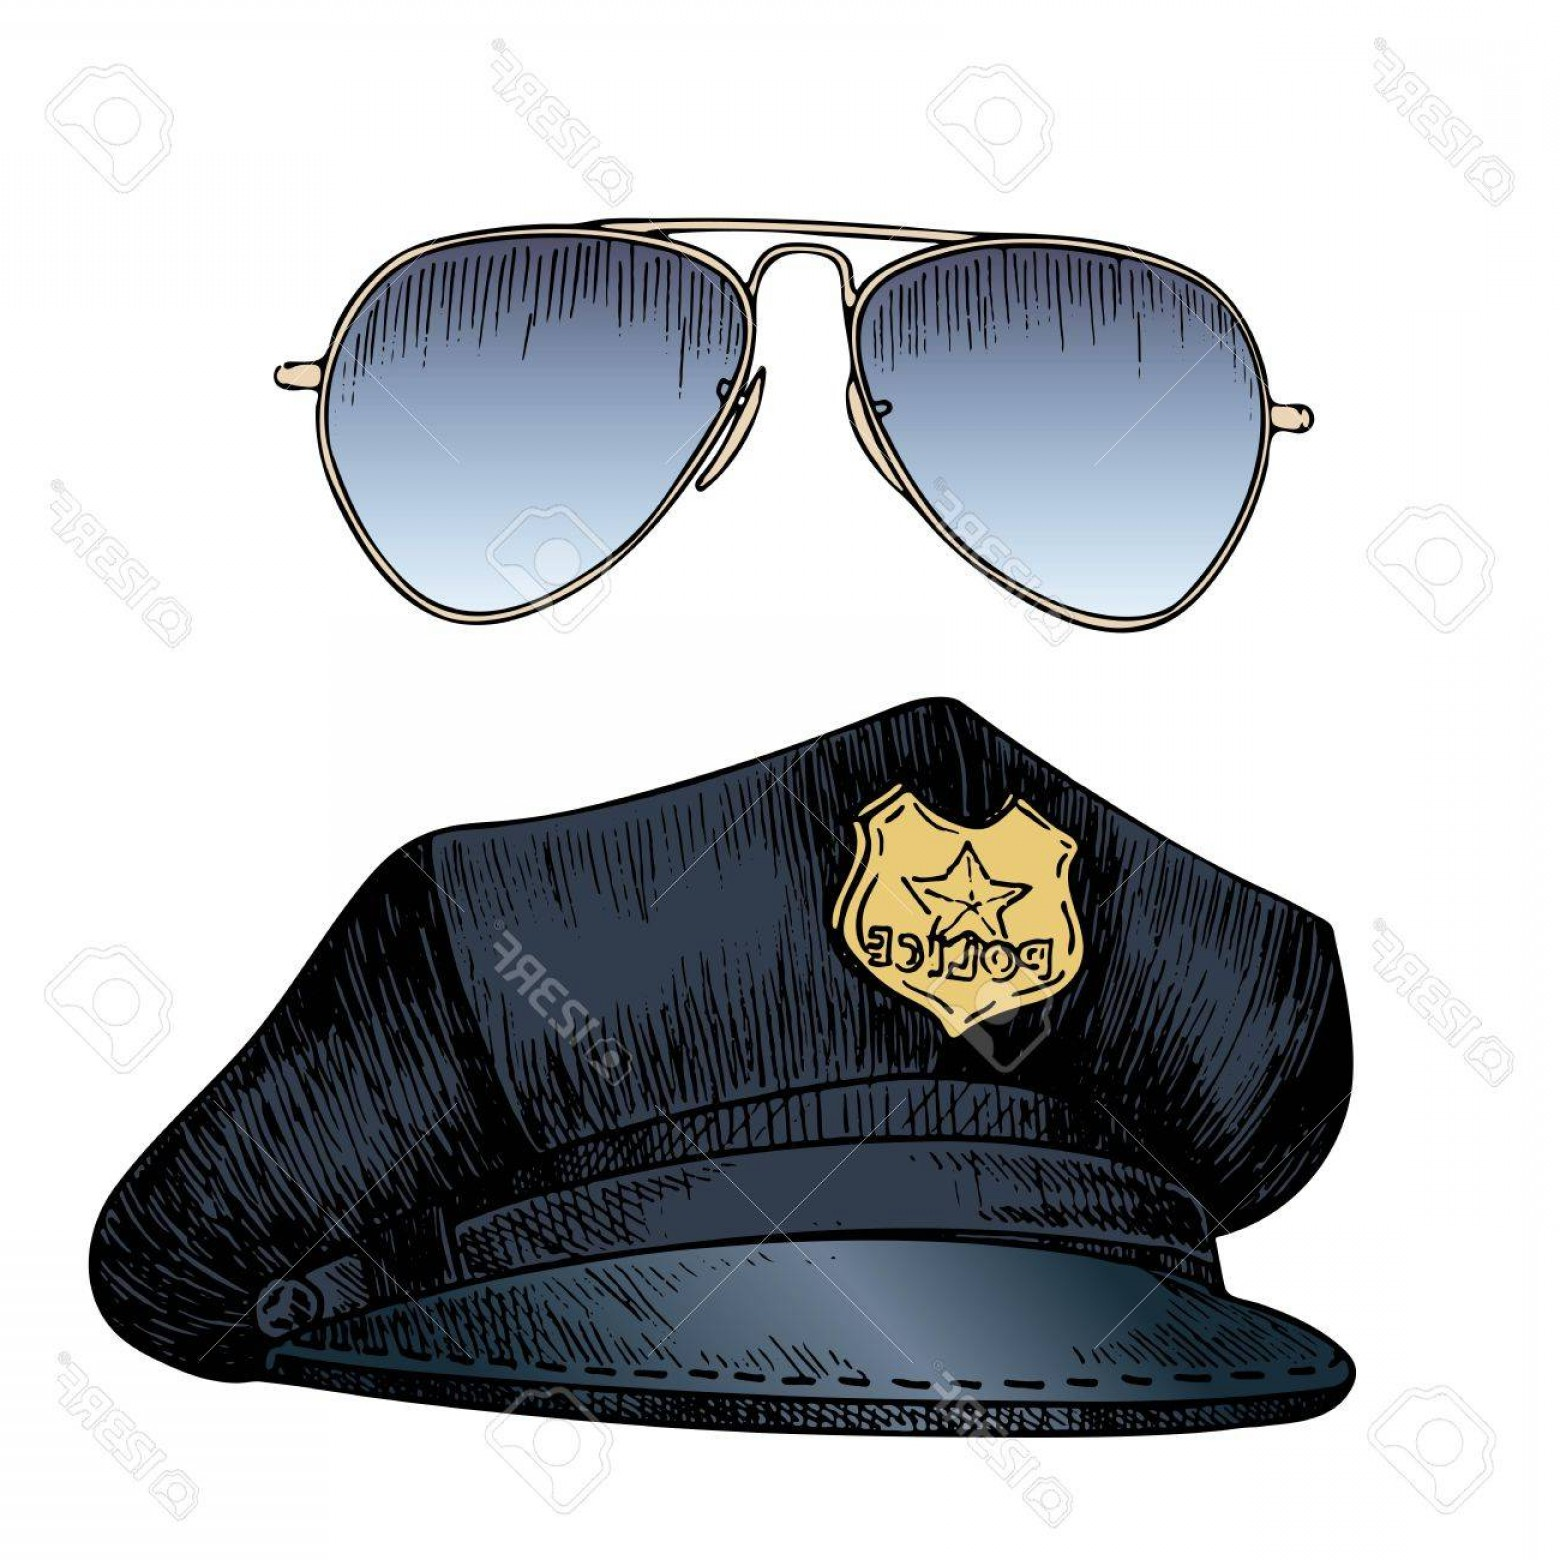 Aviator Vector Ink Drawings: Photostock Vector Vector Set Of Policeman Uniform Cap Hat And Aviators Sunglasses Hand Drawn Engraved Style Profession